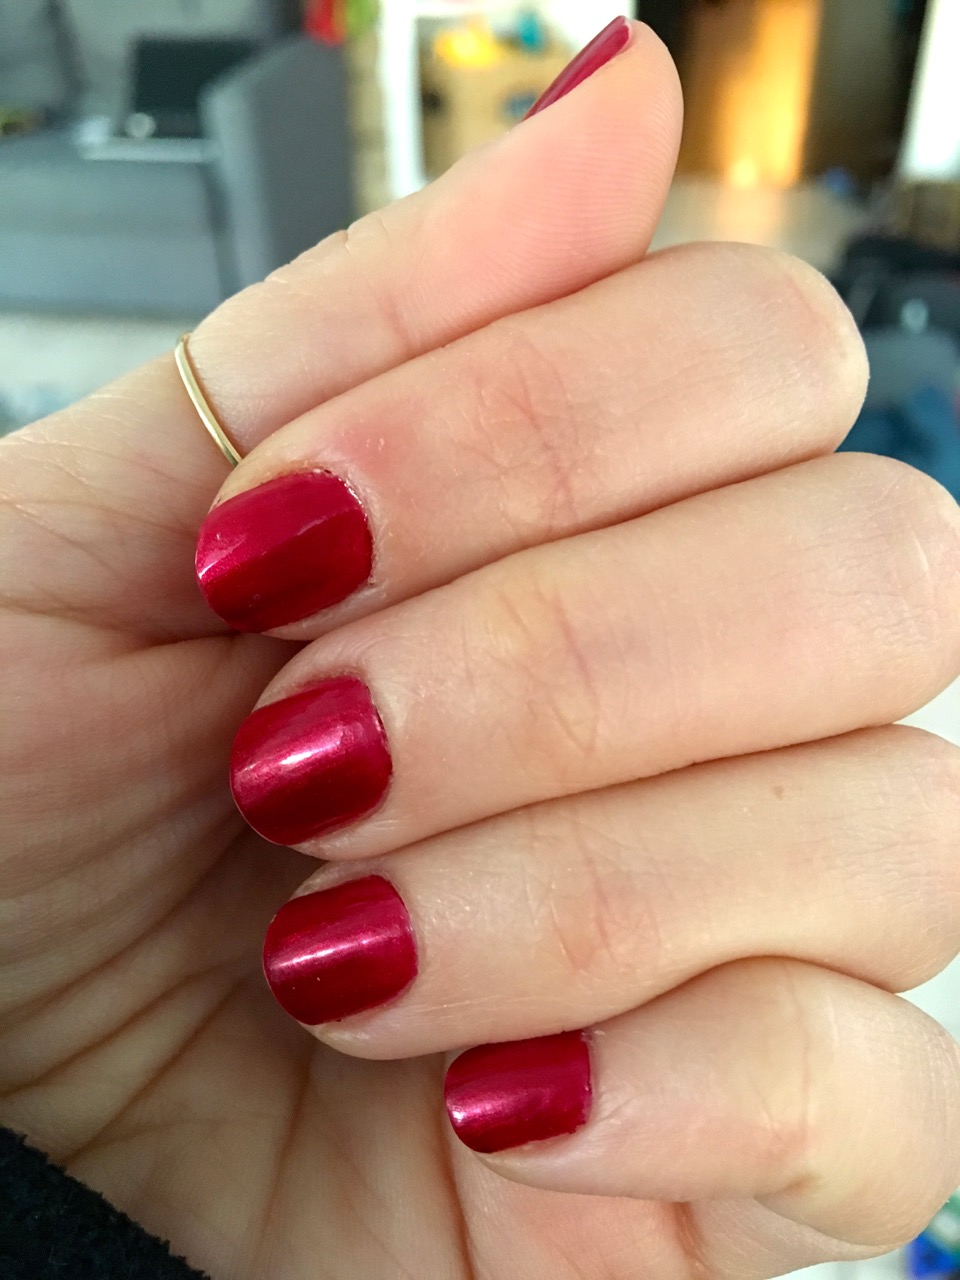 Midwestern Mama: Favorite Shimmery Red Polish and Santa Talk